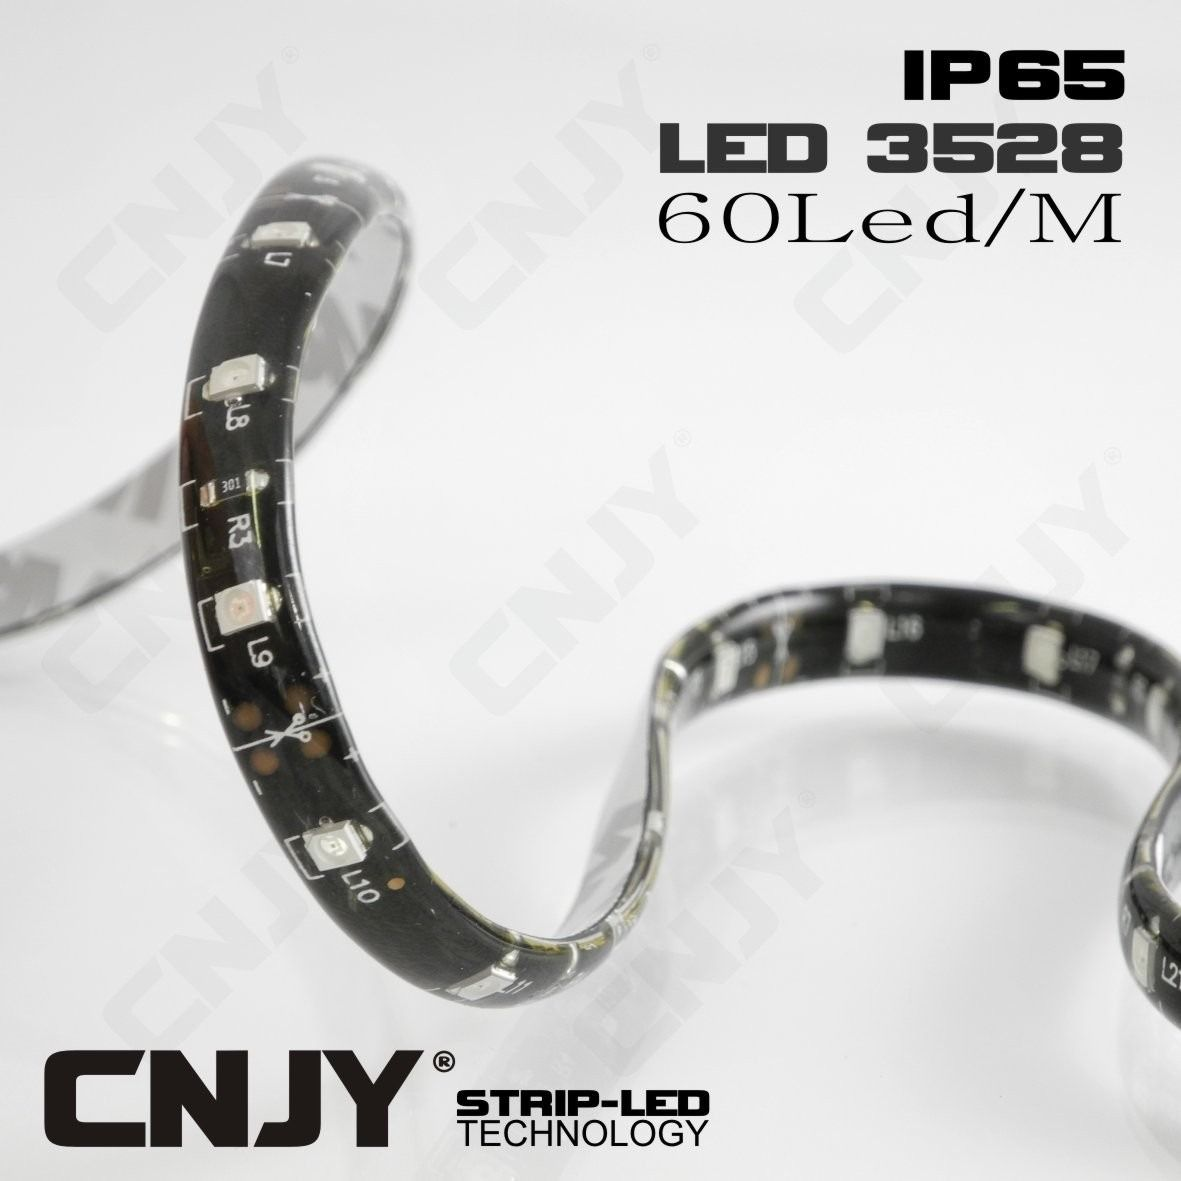 BANDE,LED,FLEXIBLE,STRIP,RUBAN,ROULEAU, DECORATION,12V,BAR,LED,DEL,SMD,ETANCHE,AQUARIUM,TUNING,blanc,chaud